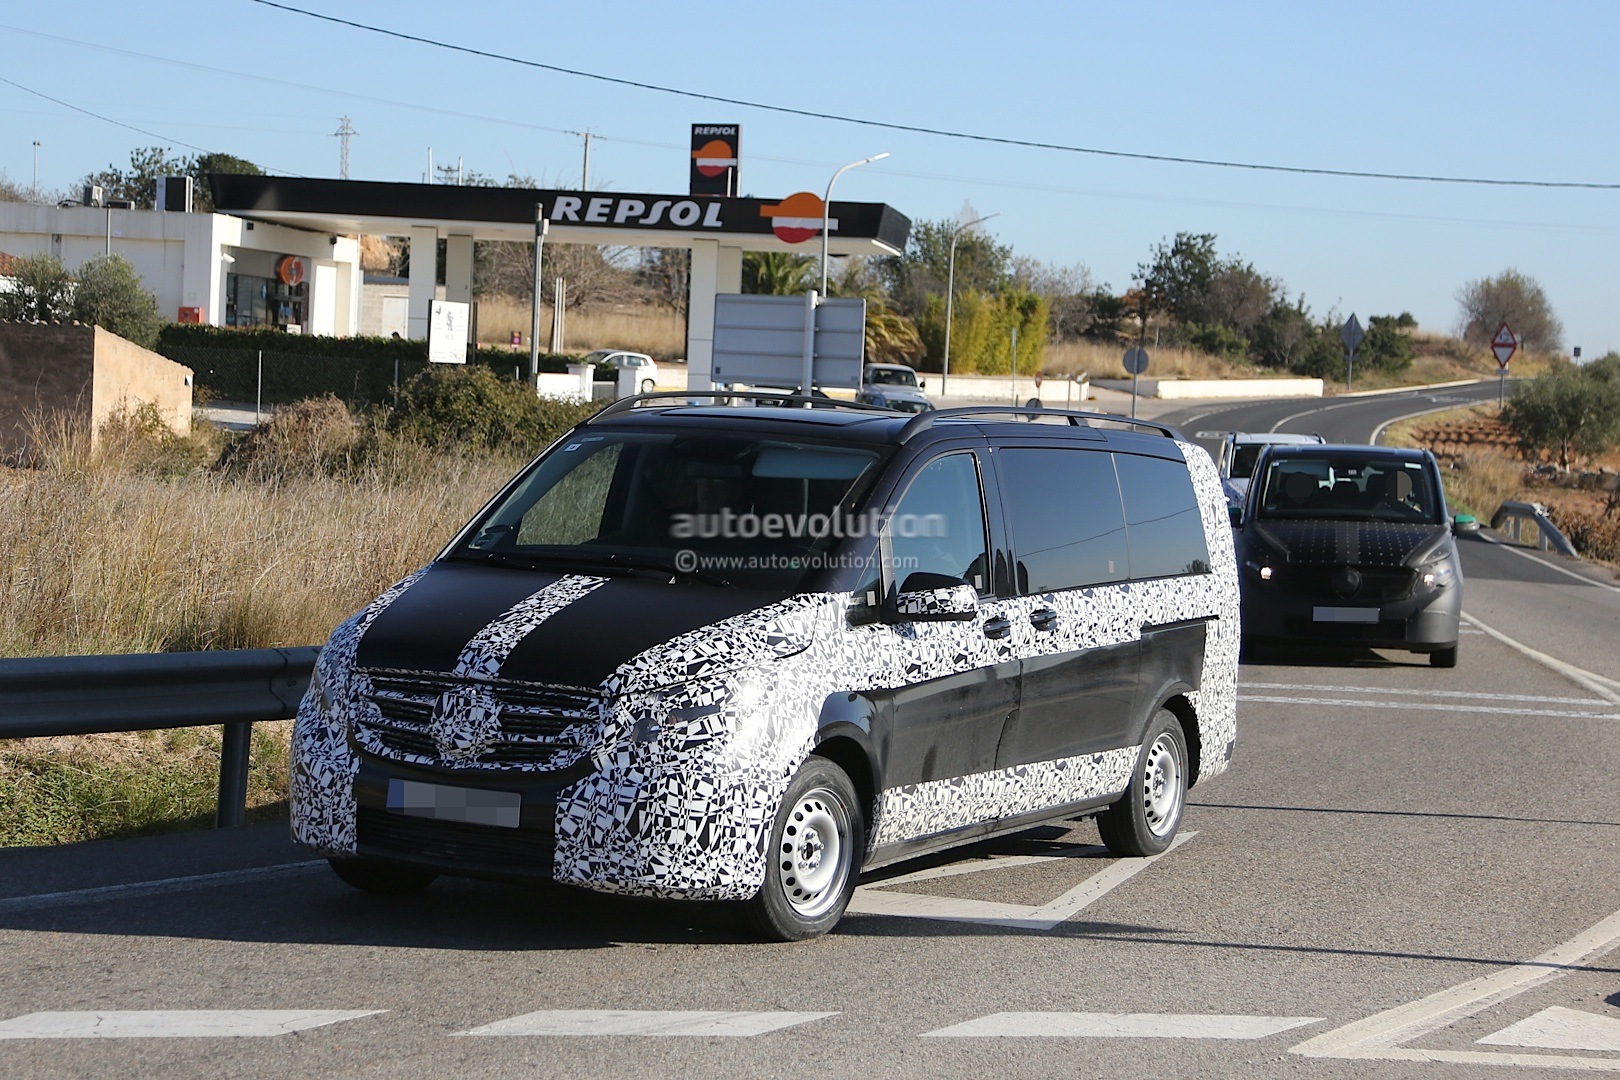 2014 - [Mercedes] Classe V/Vito - Page 4 Herd-of-2015-mercedes-benz-v-class-prototypes-caught-in-the-open-photo-gallery-1080p-1